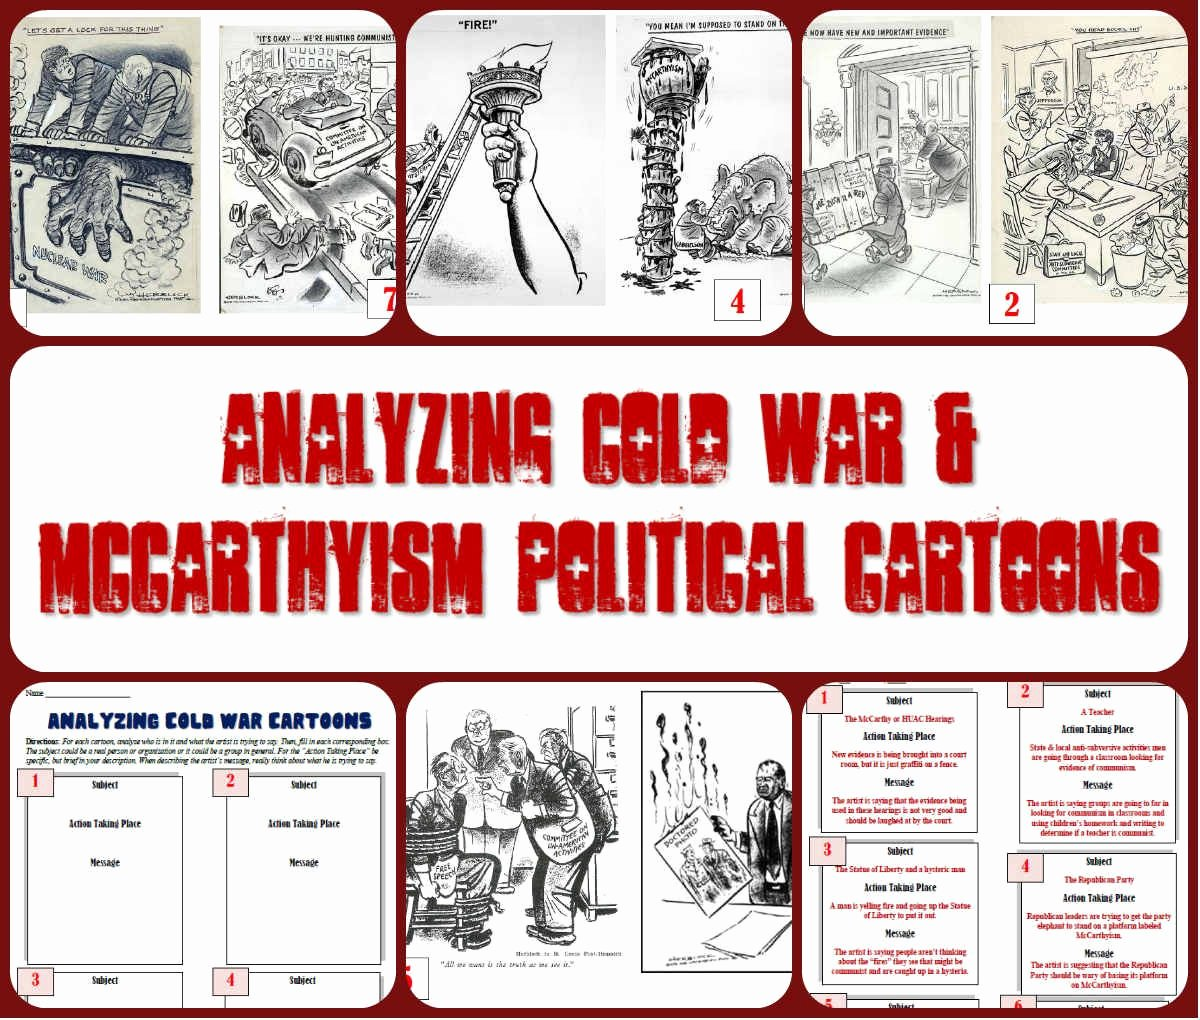 Cartoon Analysis Worksheet Answer Key Awesome Analyzing Cold War & Mccarthyism Political Cartoons